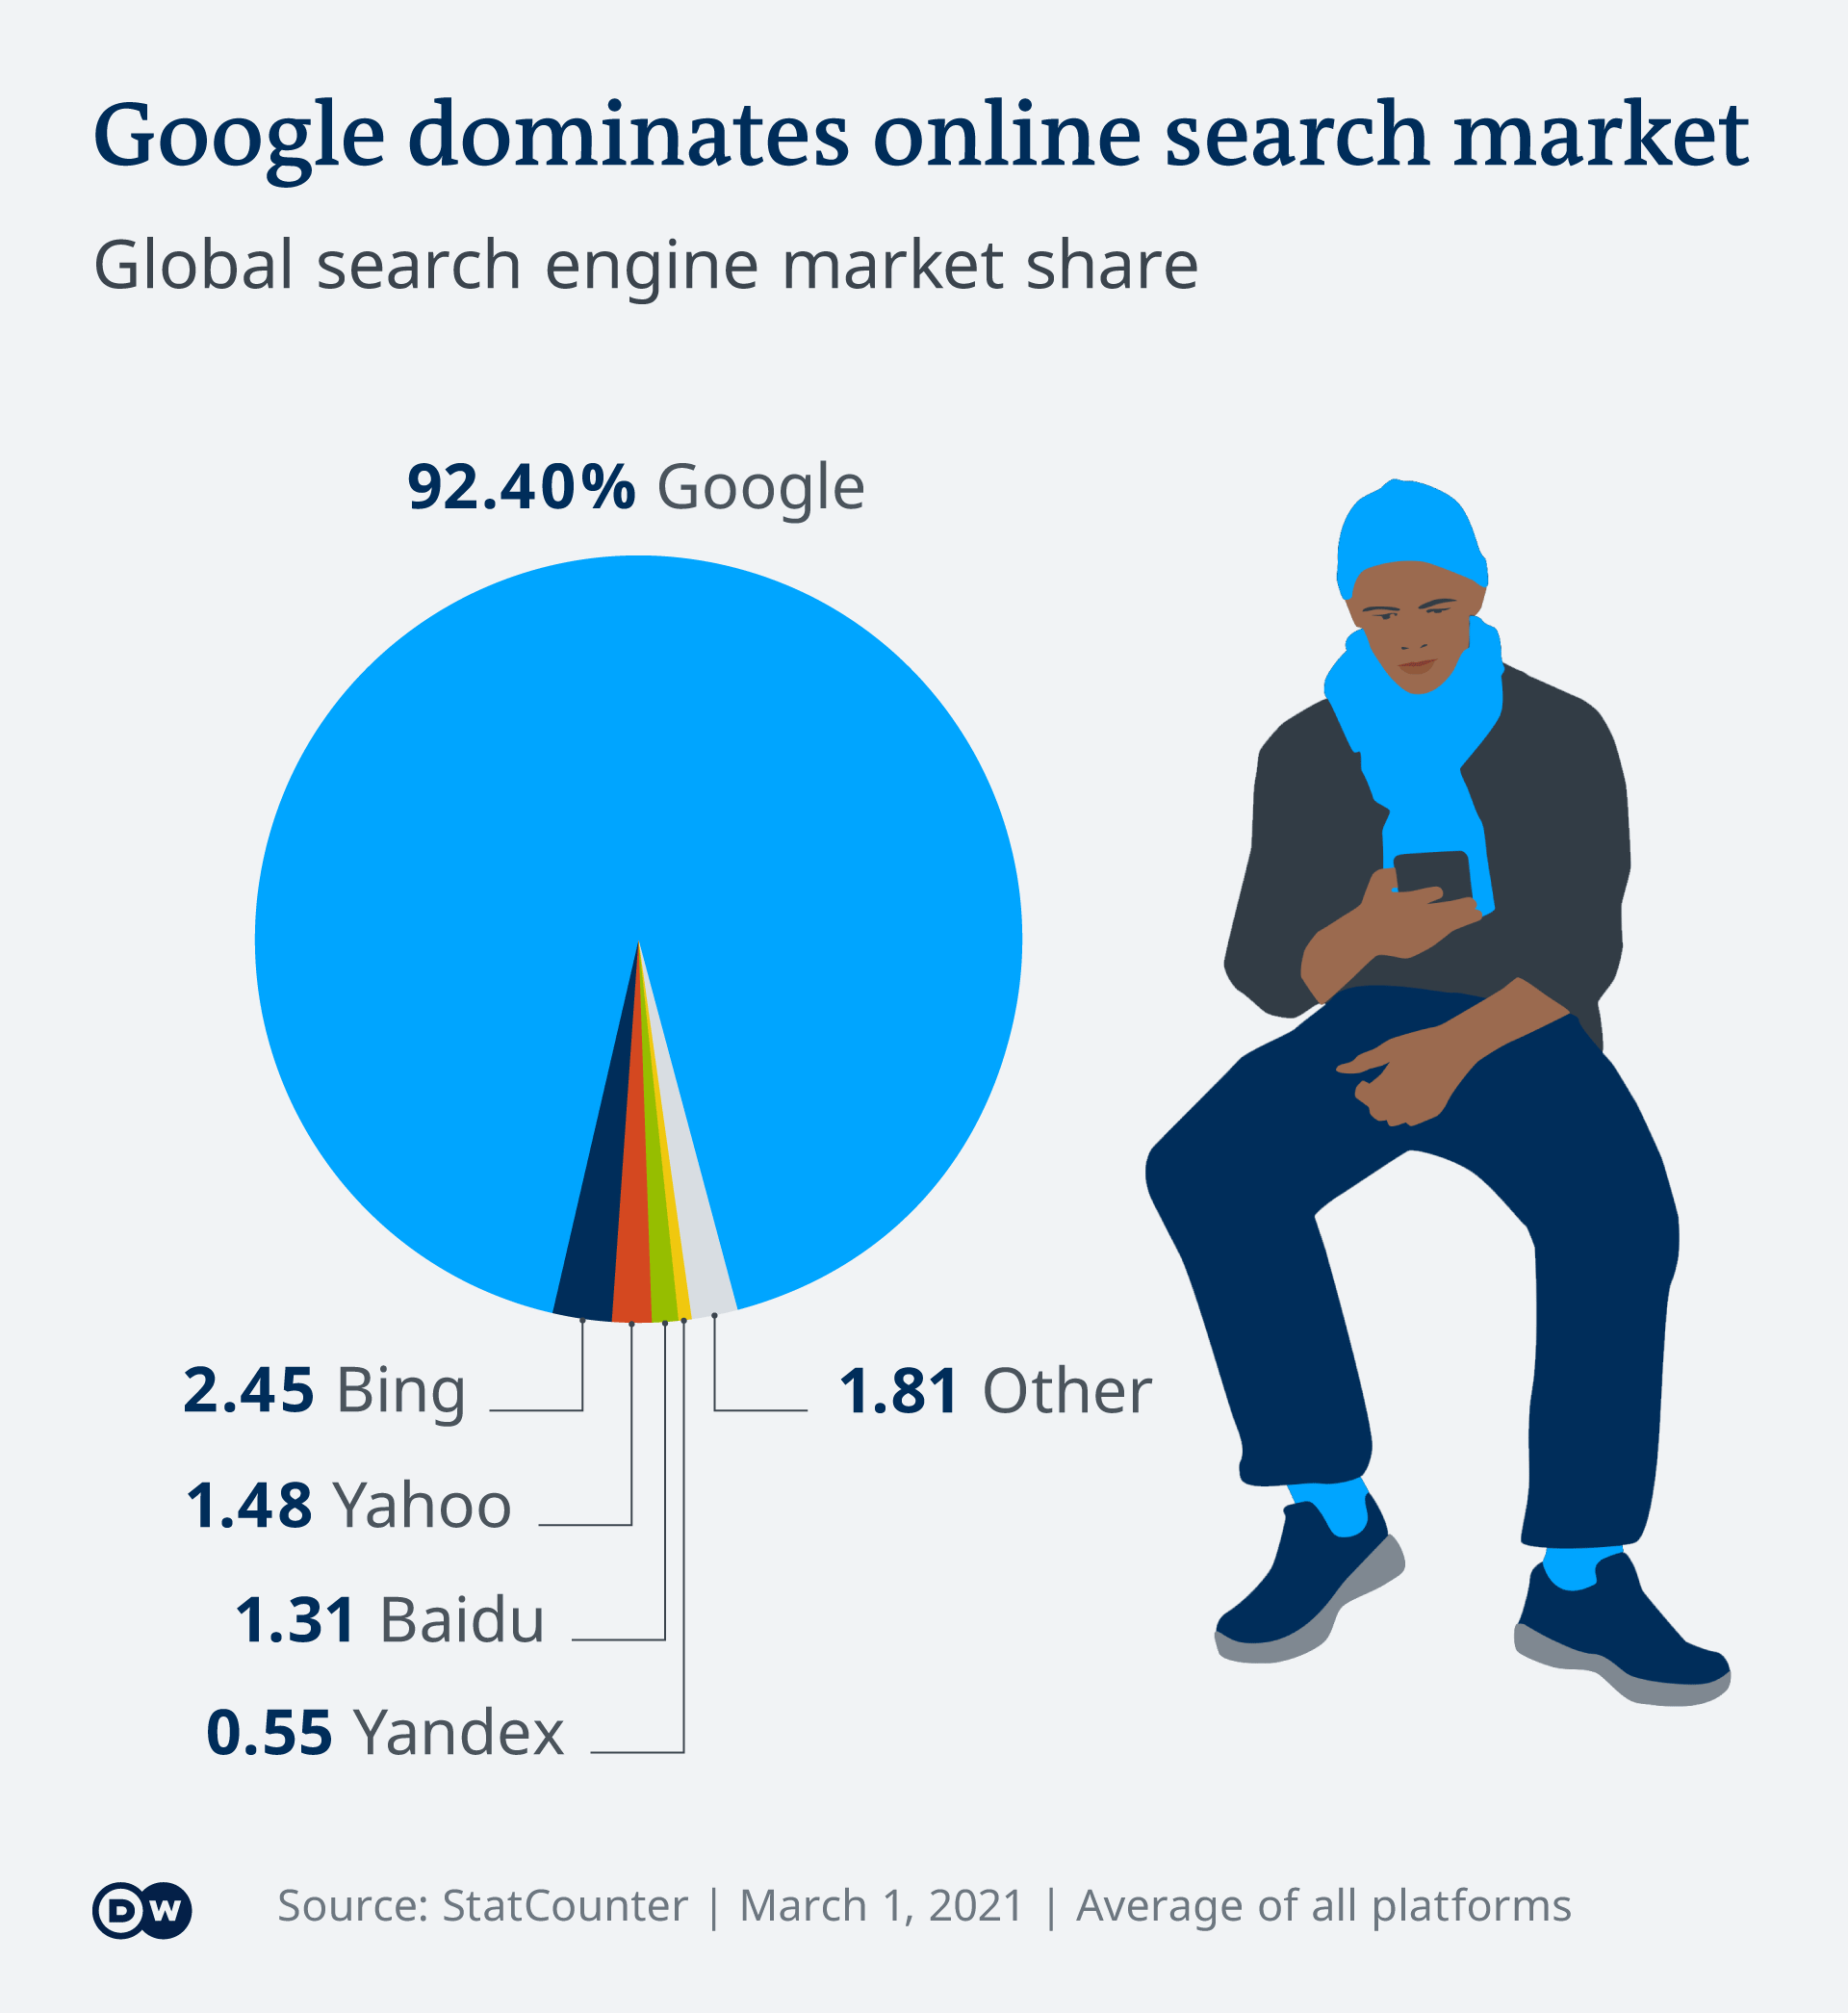 An infographic showing Google's dominant position in the online search market